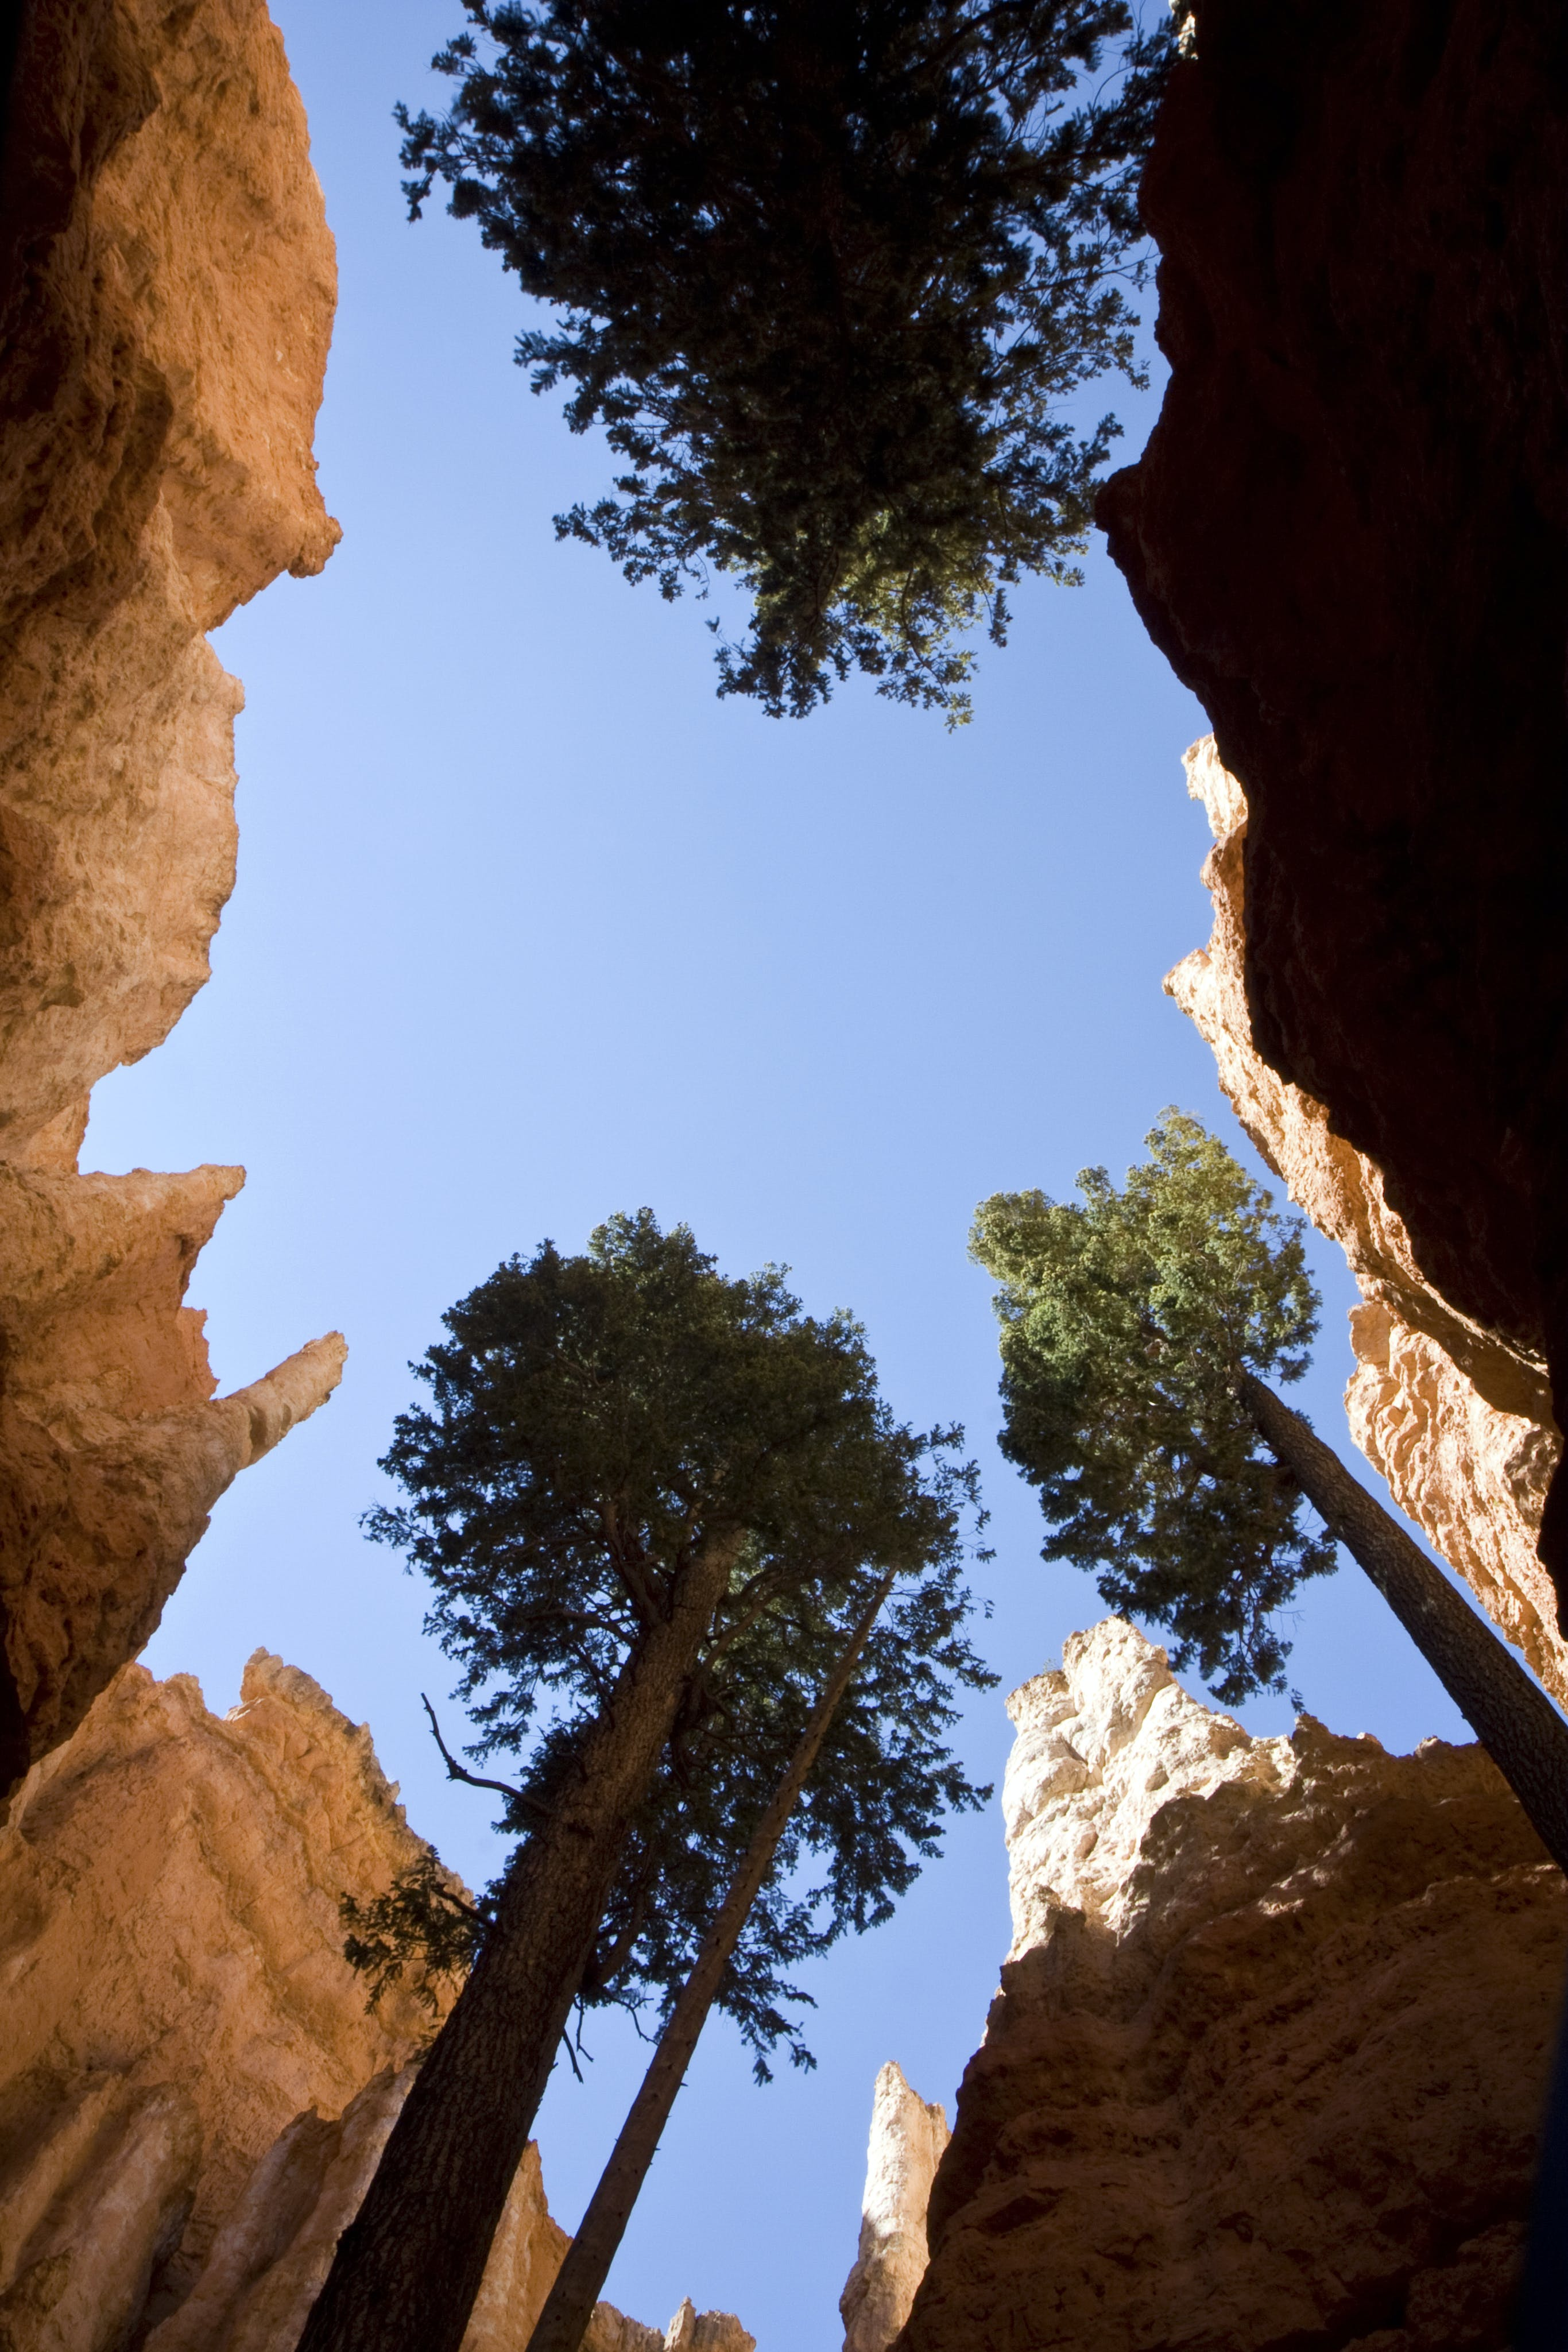 Worm's Eye View Photography of Trees and Rock Formation